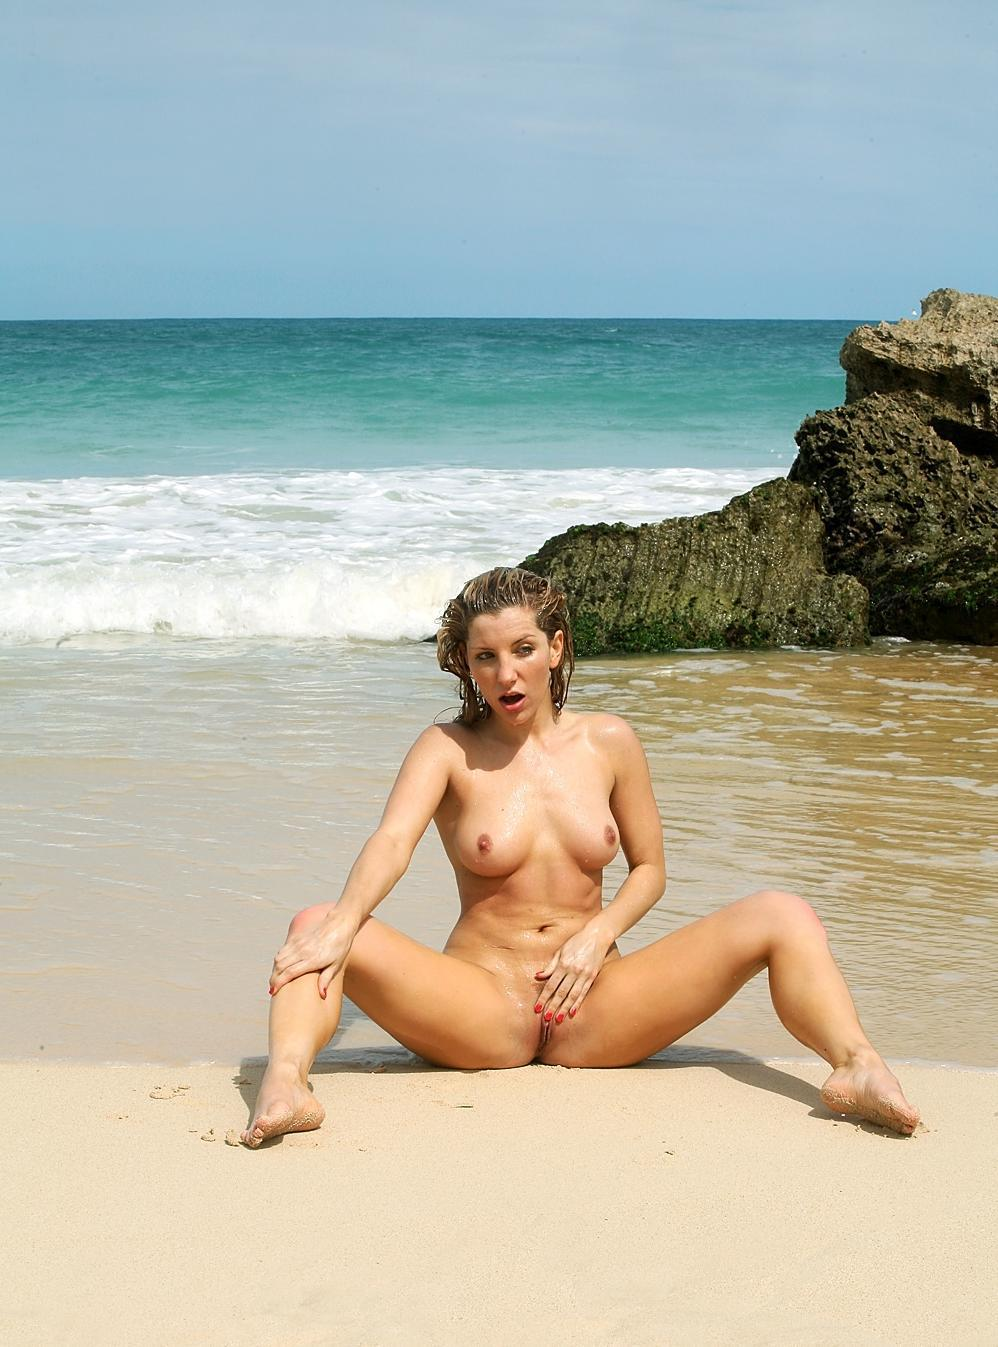 Beach sex girl on